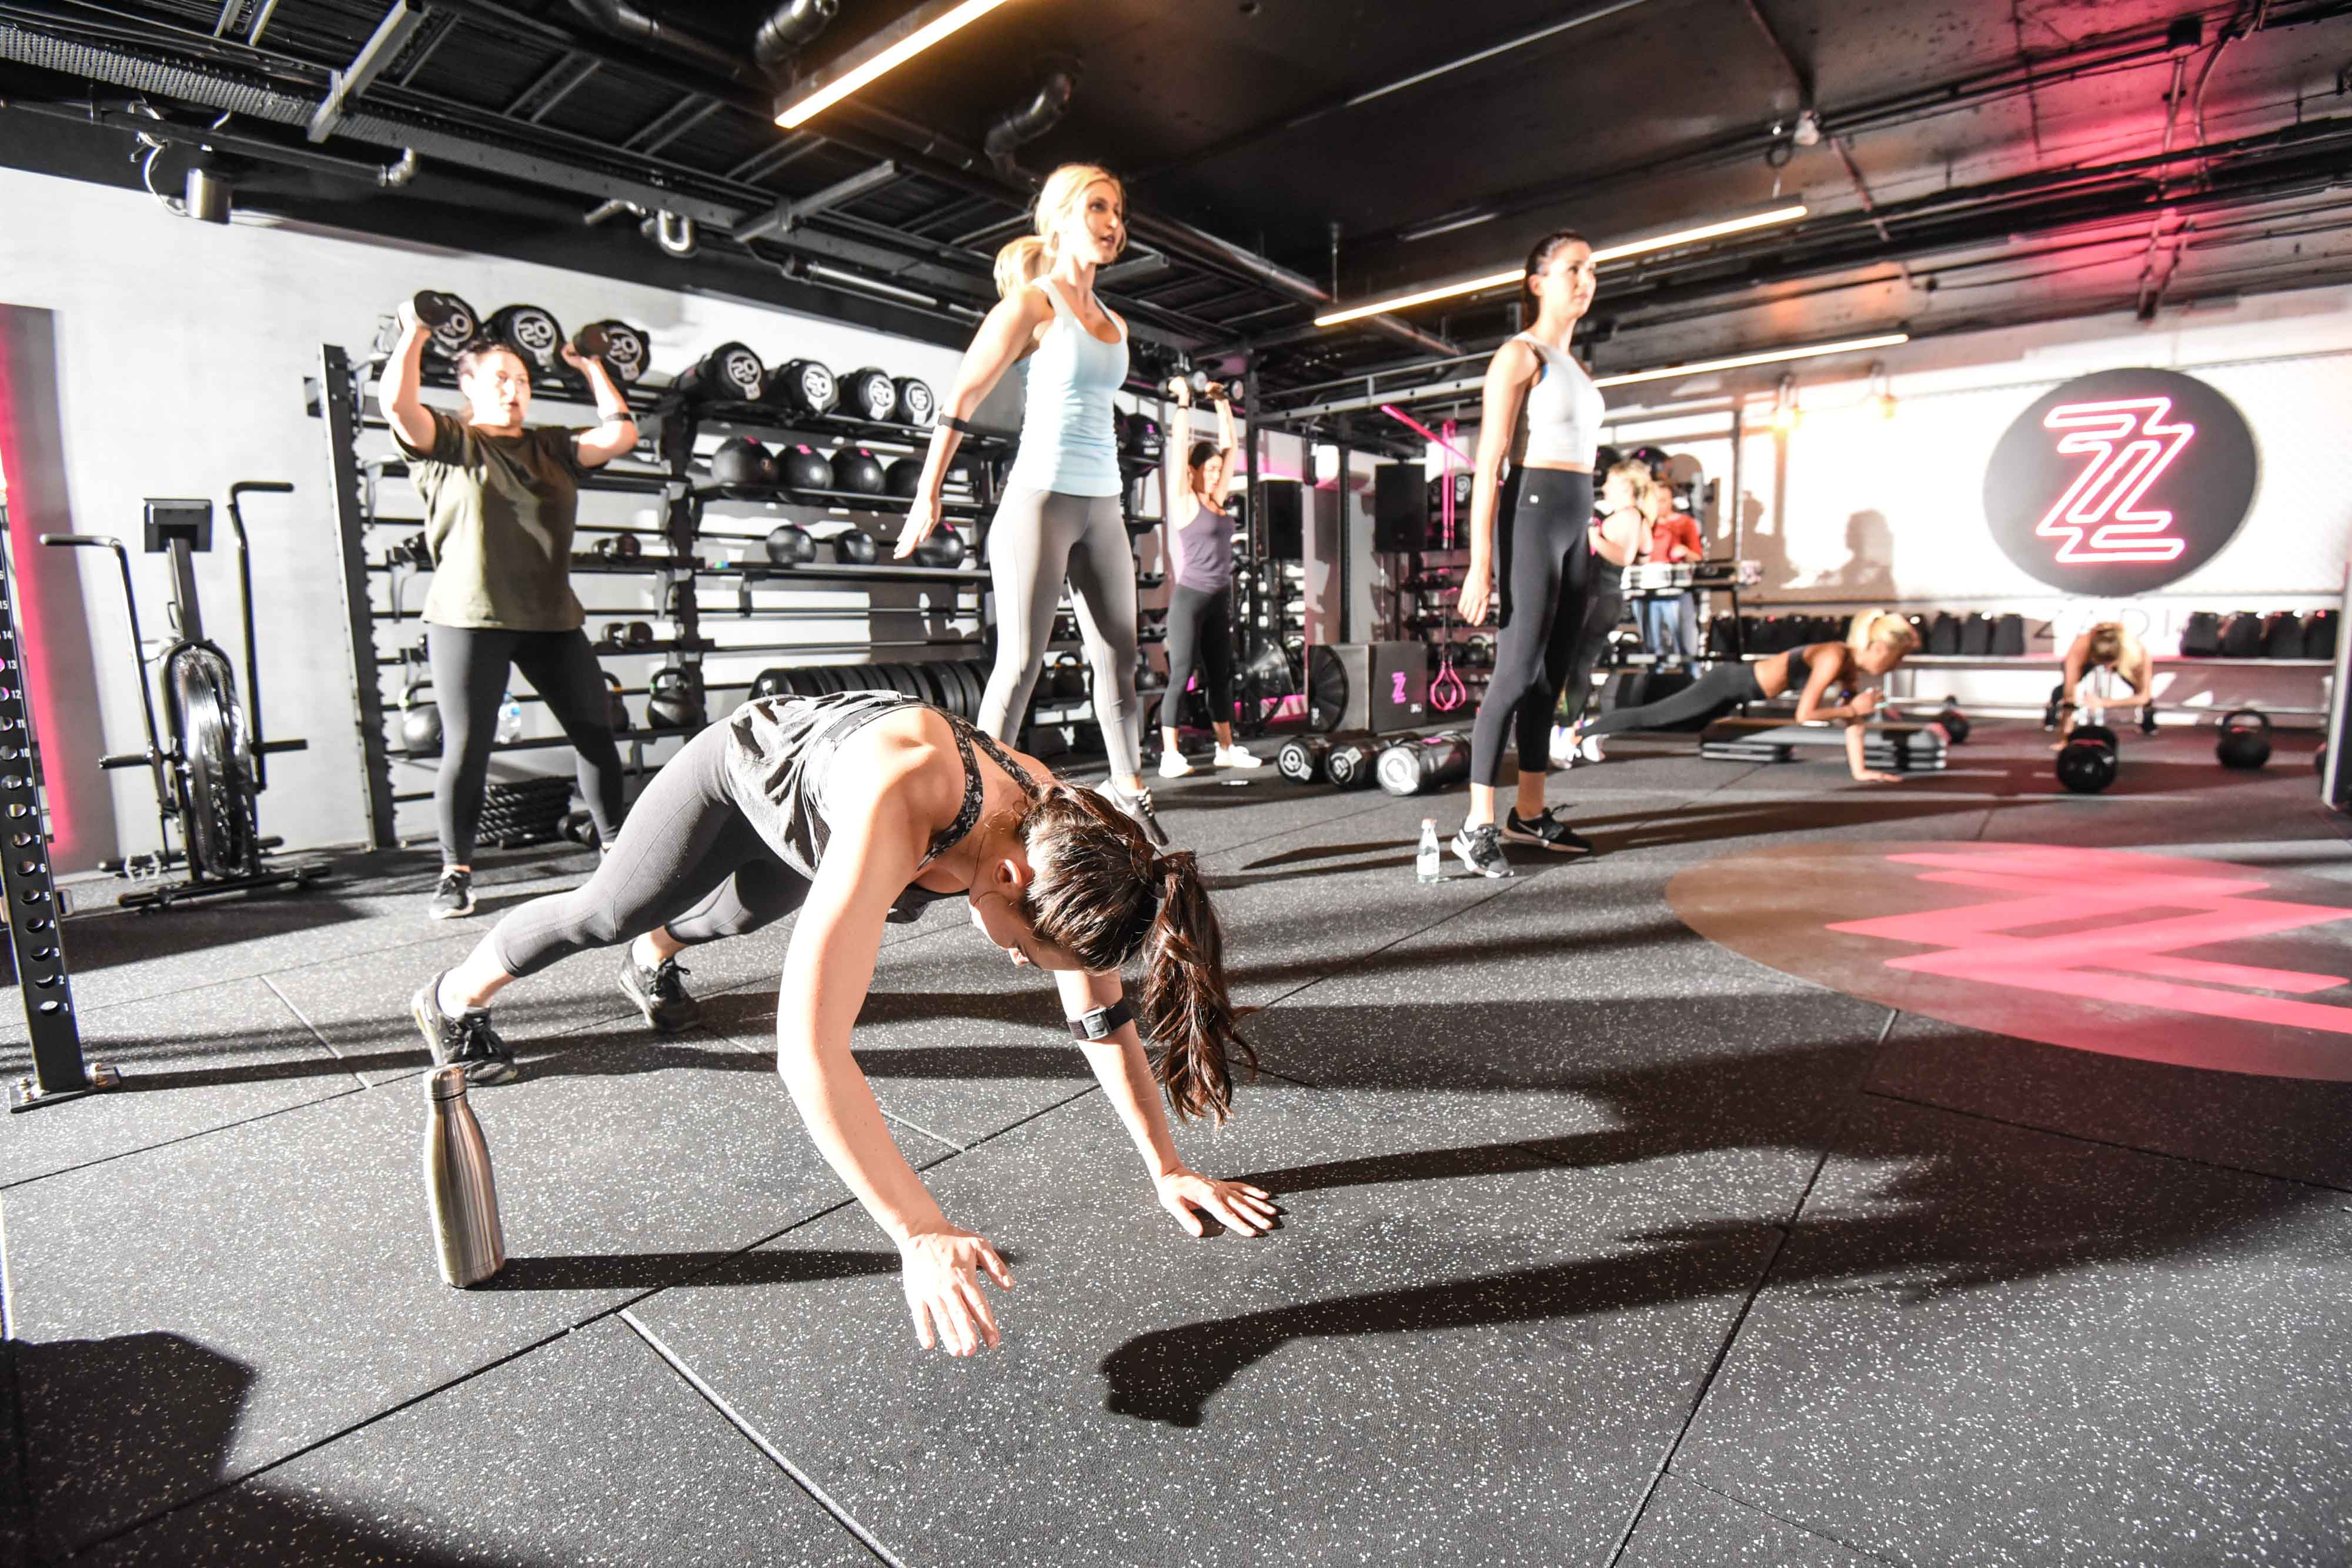 zadi-the-game-changer-in-female-fitness-boutique-studios-not-a-gym-7